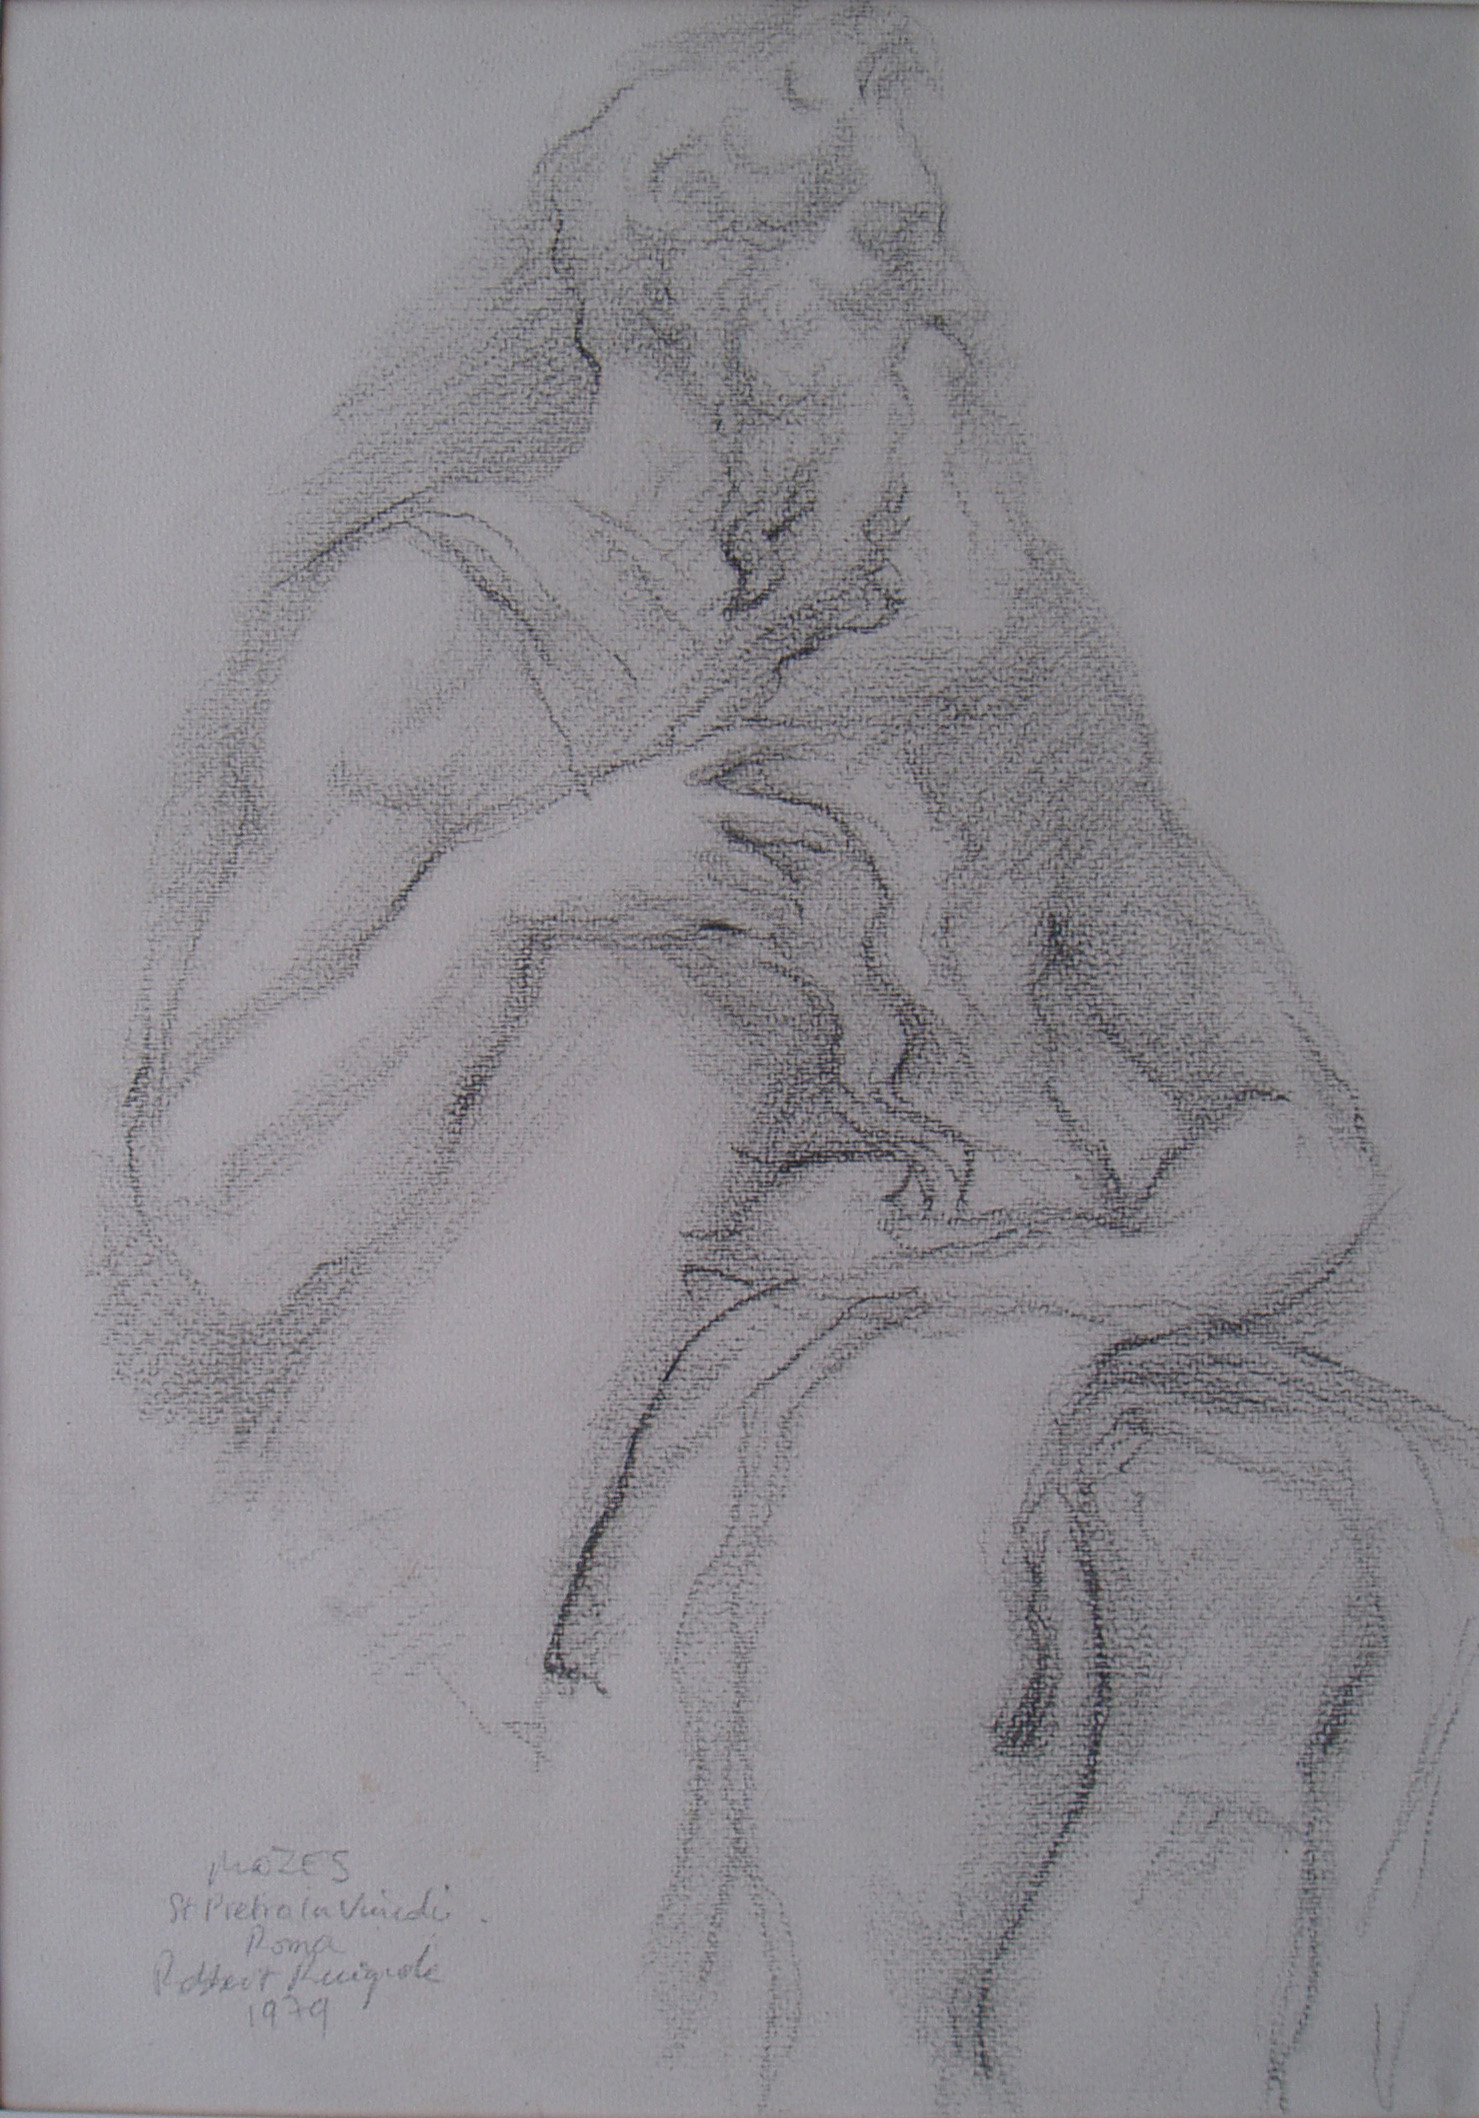 Robbert Ruigrok, Moses (after Michelangelo), 1979. Pastel pencil on paper. 34 x 25 cm.